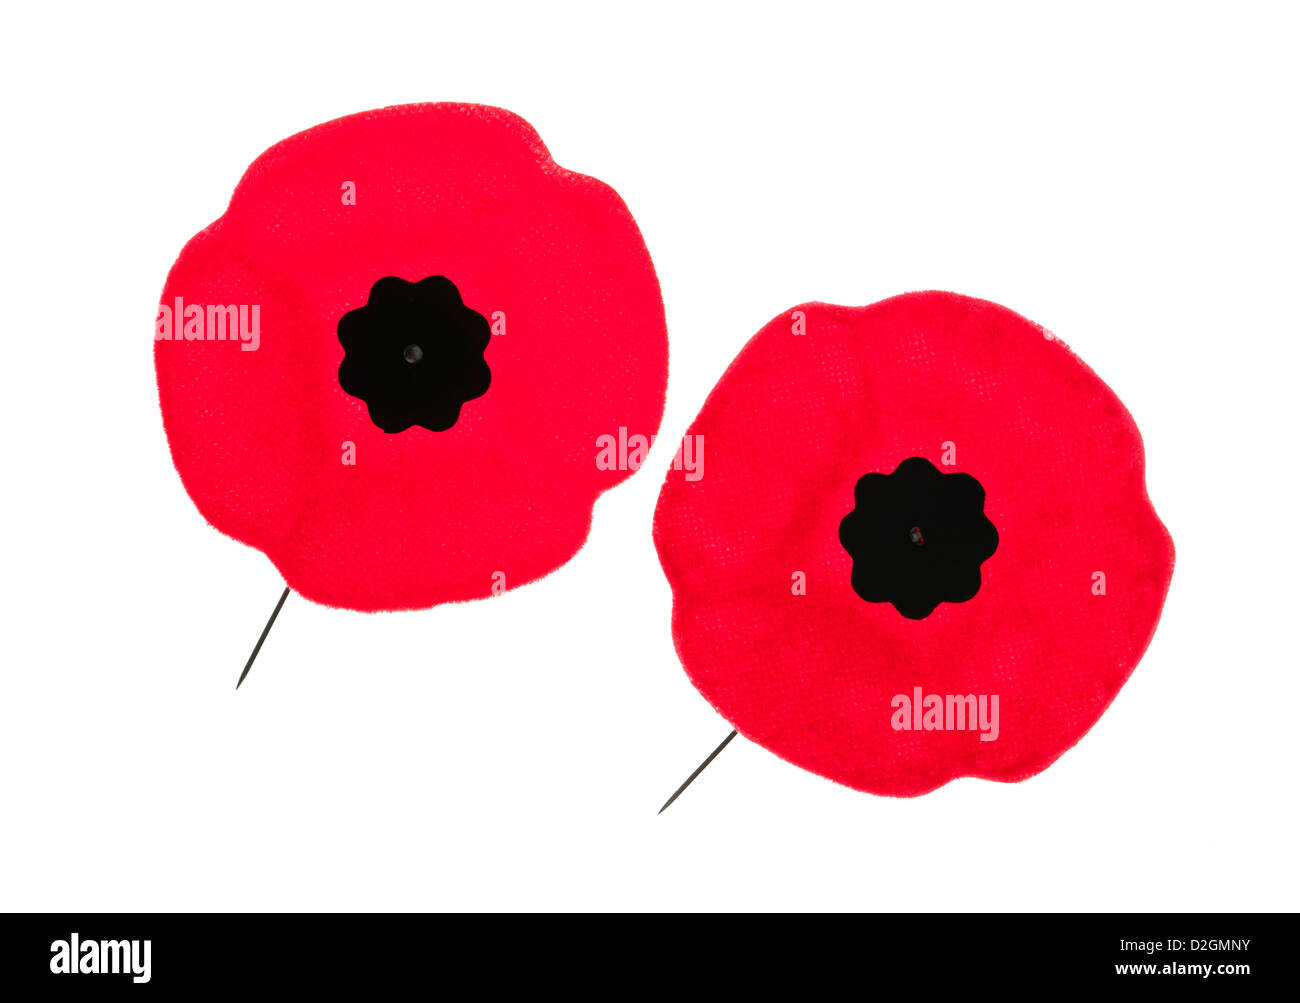 Two red poppy lapel pins for Remembrance Day - Stock Image